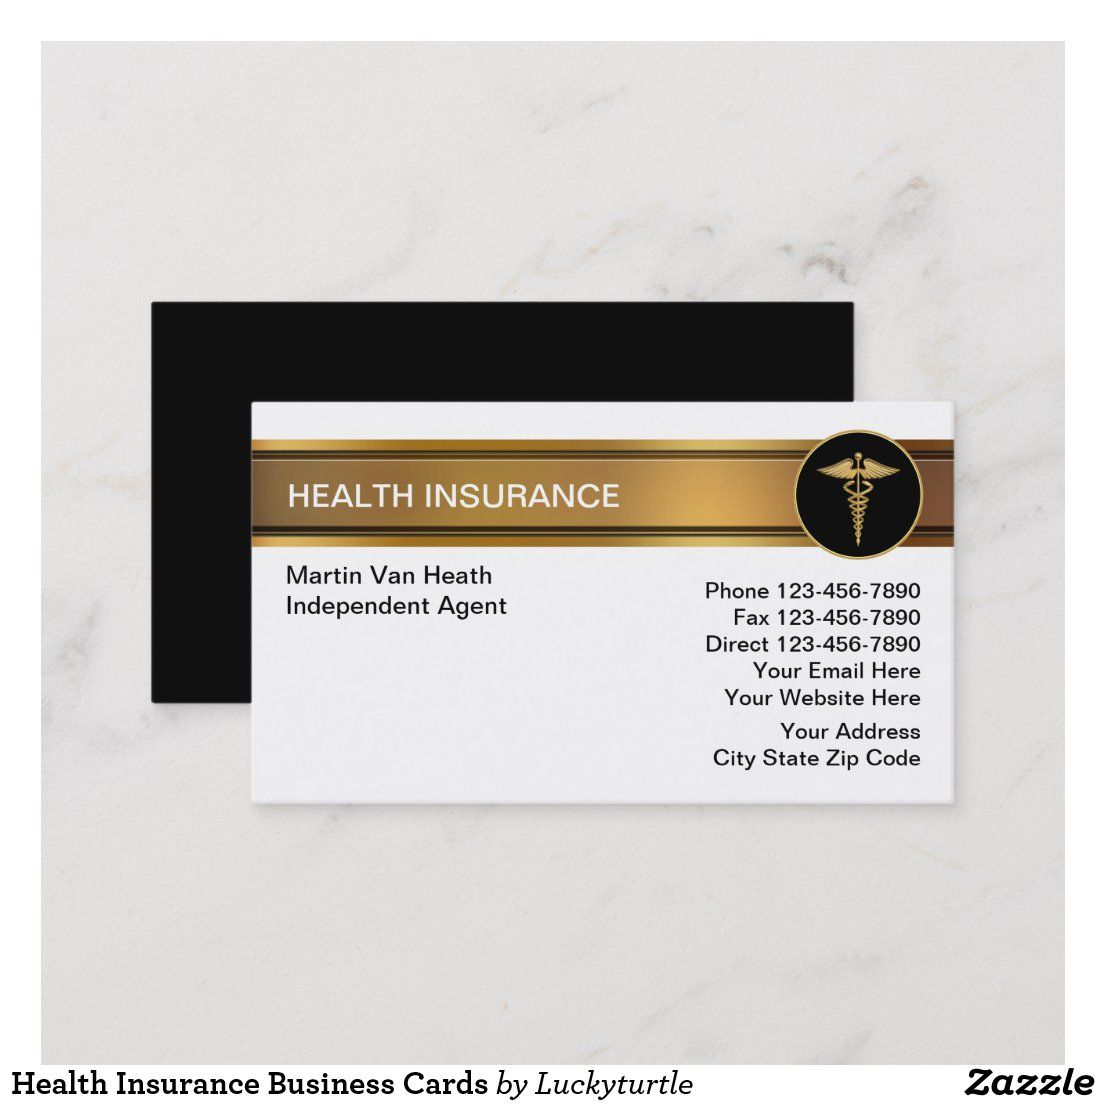 Health insurance business cards in 2020